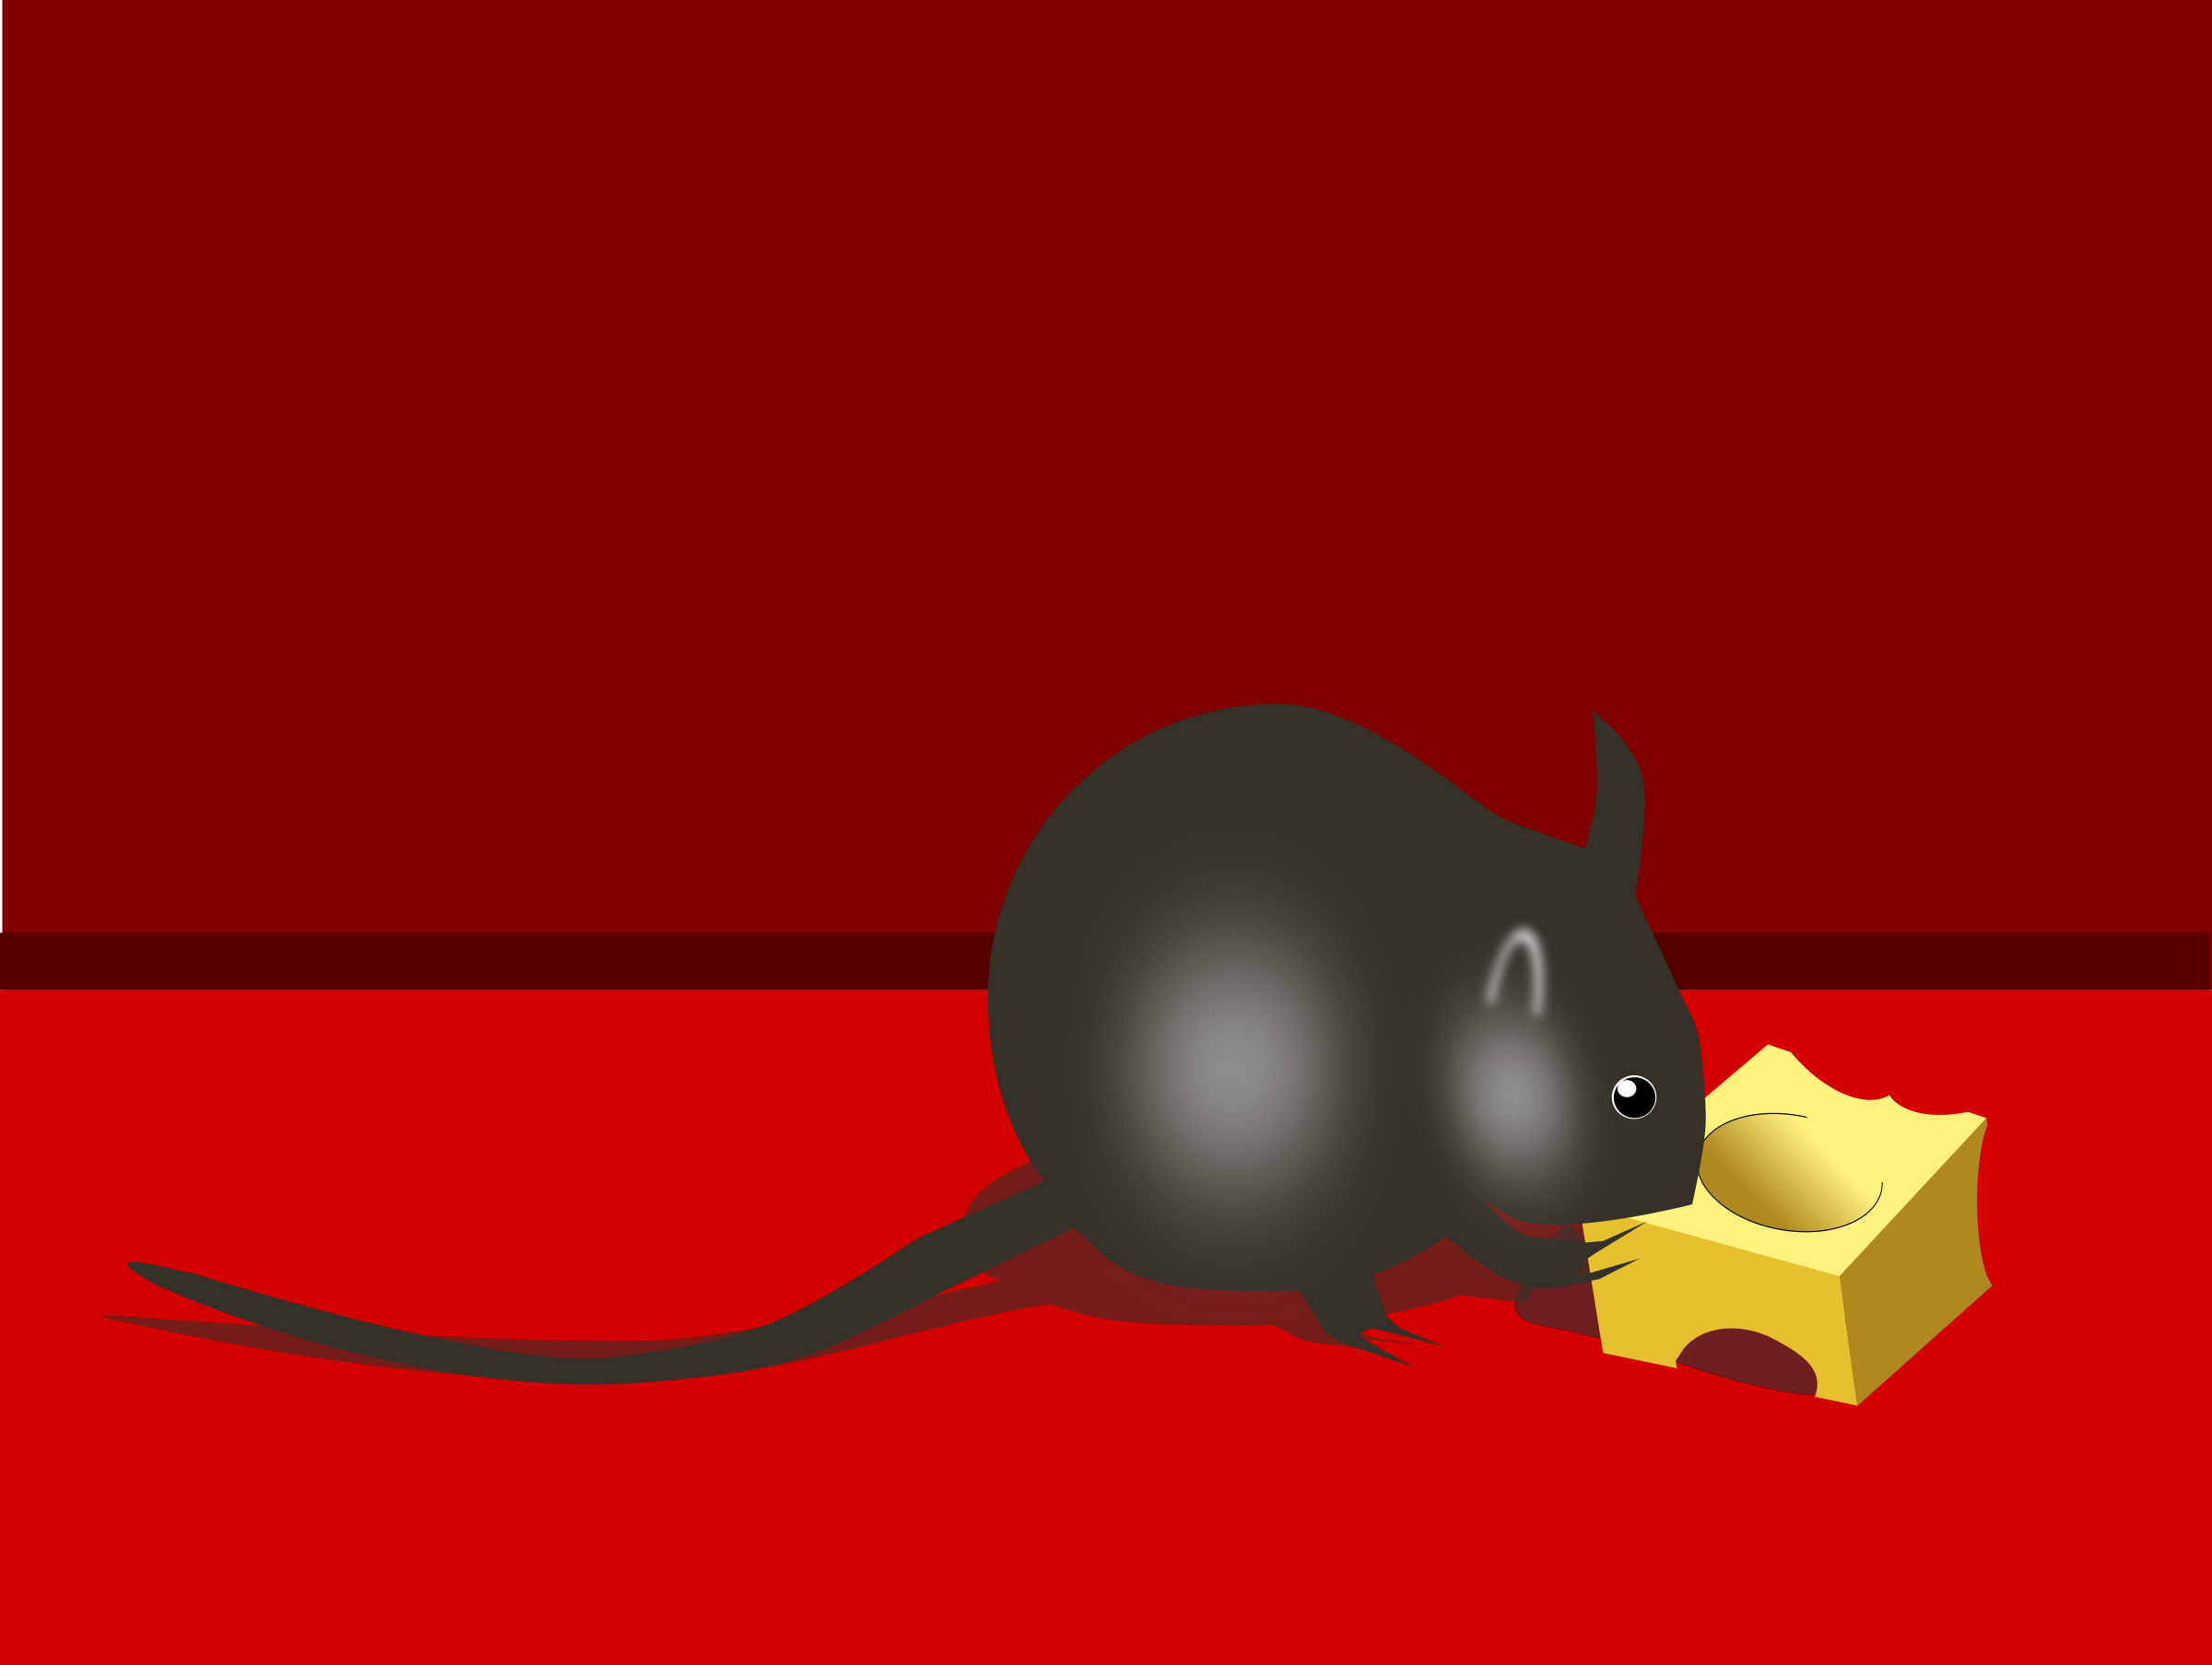 Mouse with cheese by user unknown